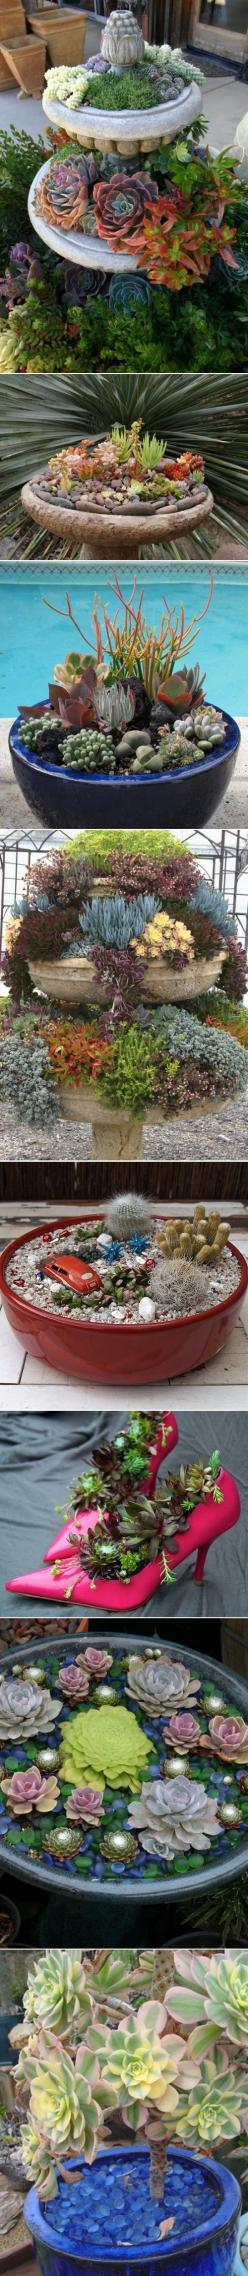 I need to do something like this for my husband. He loves succulents, especially the little chickens.: Succulents Garden, Garden Ideas, Cactus Succulents, Amazing Succulents, Ideas Succulents, Succulent Arrangement